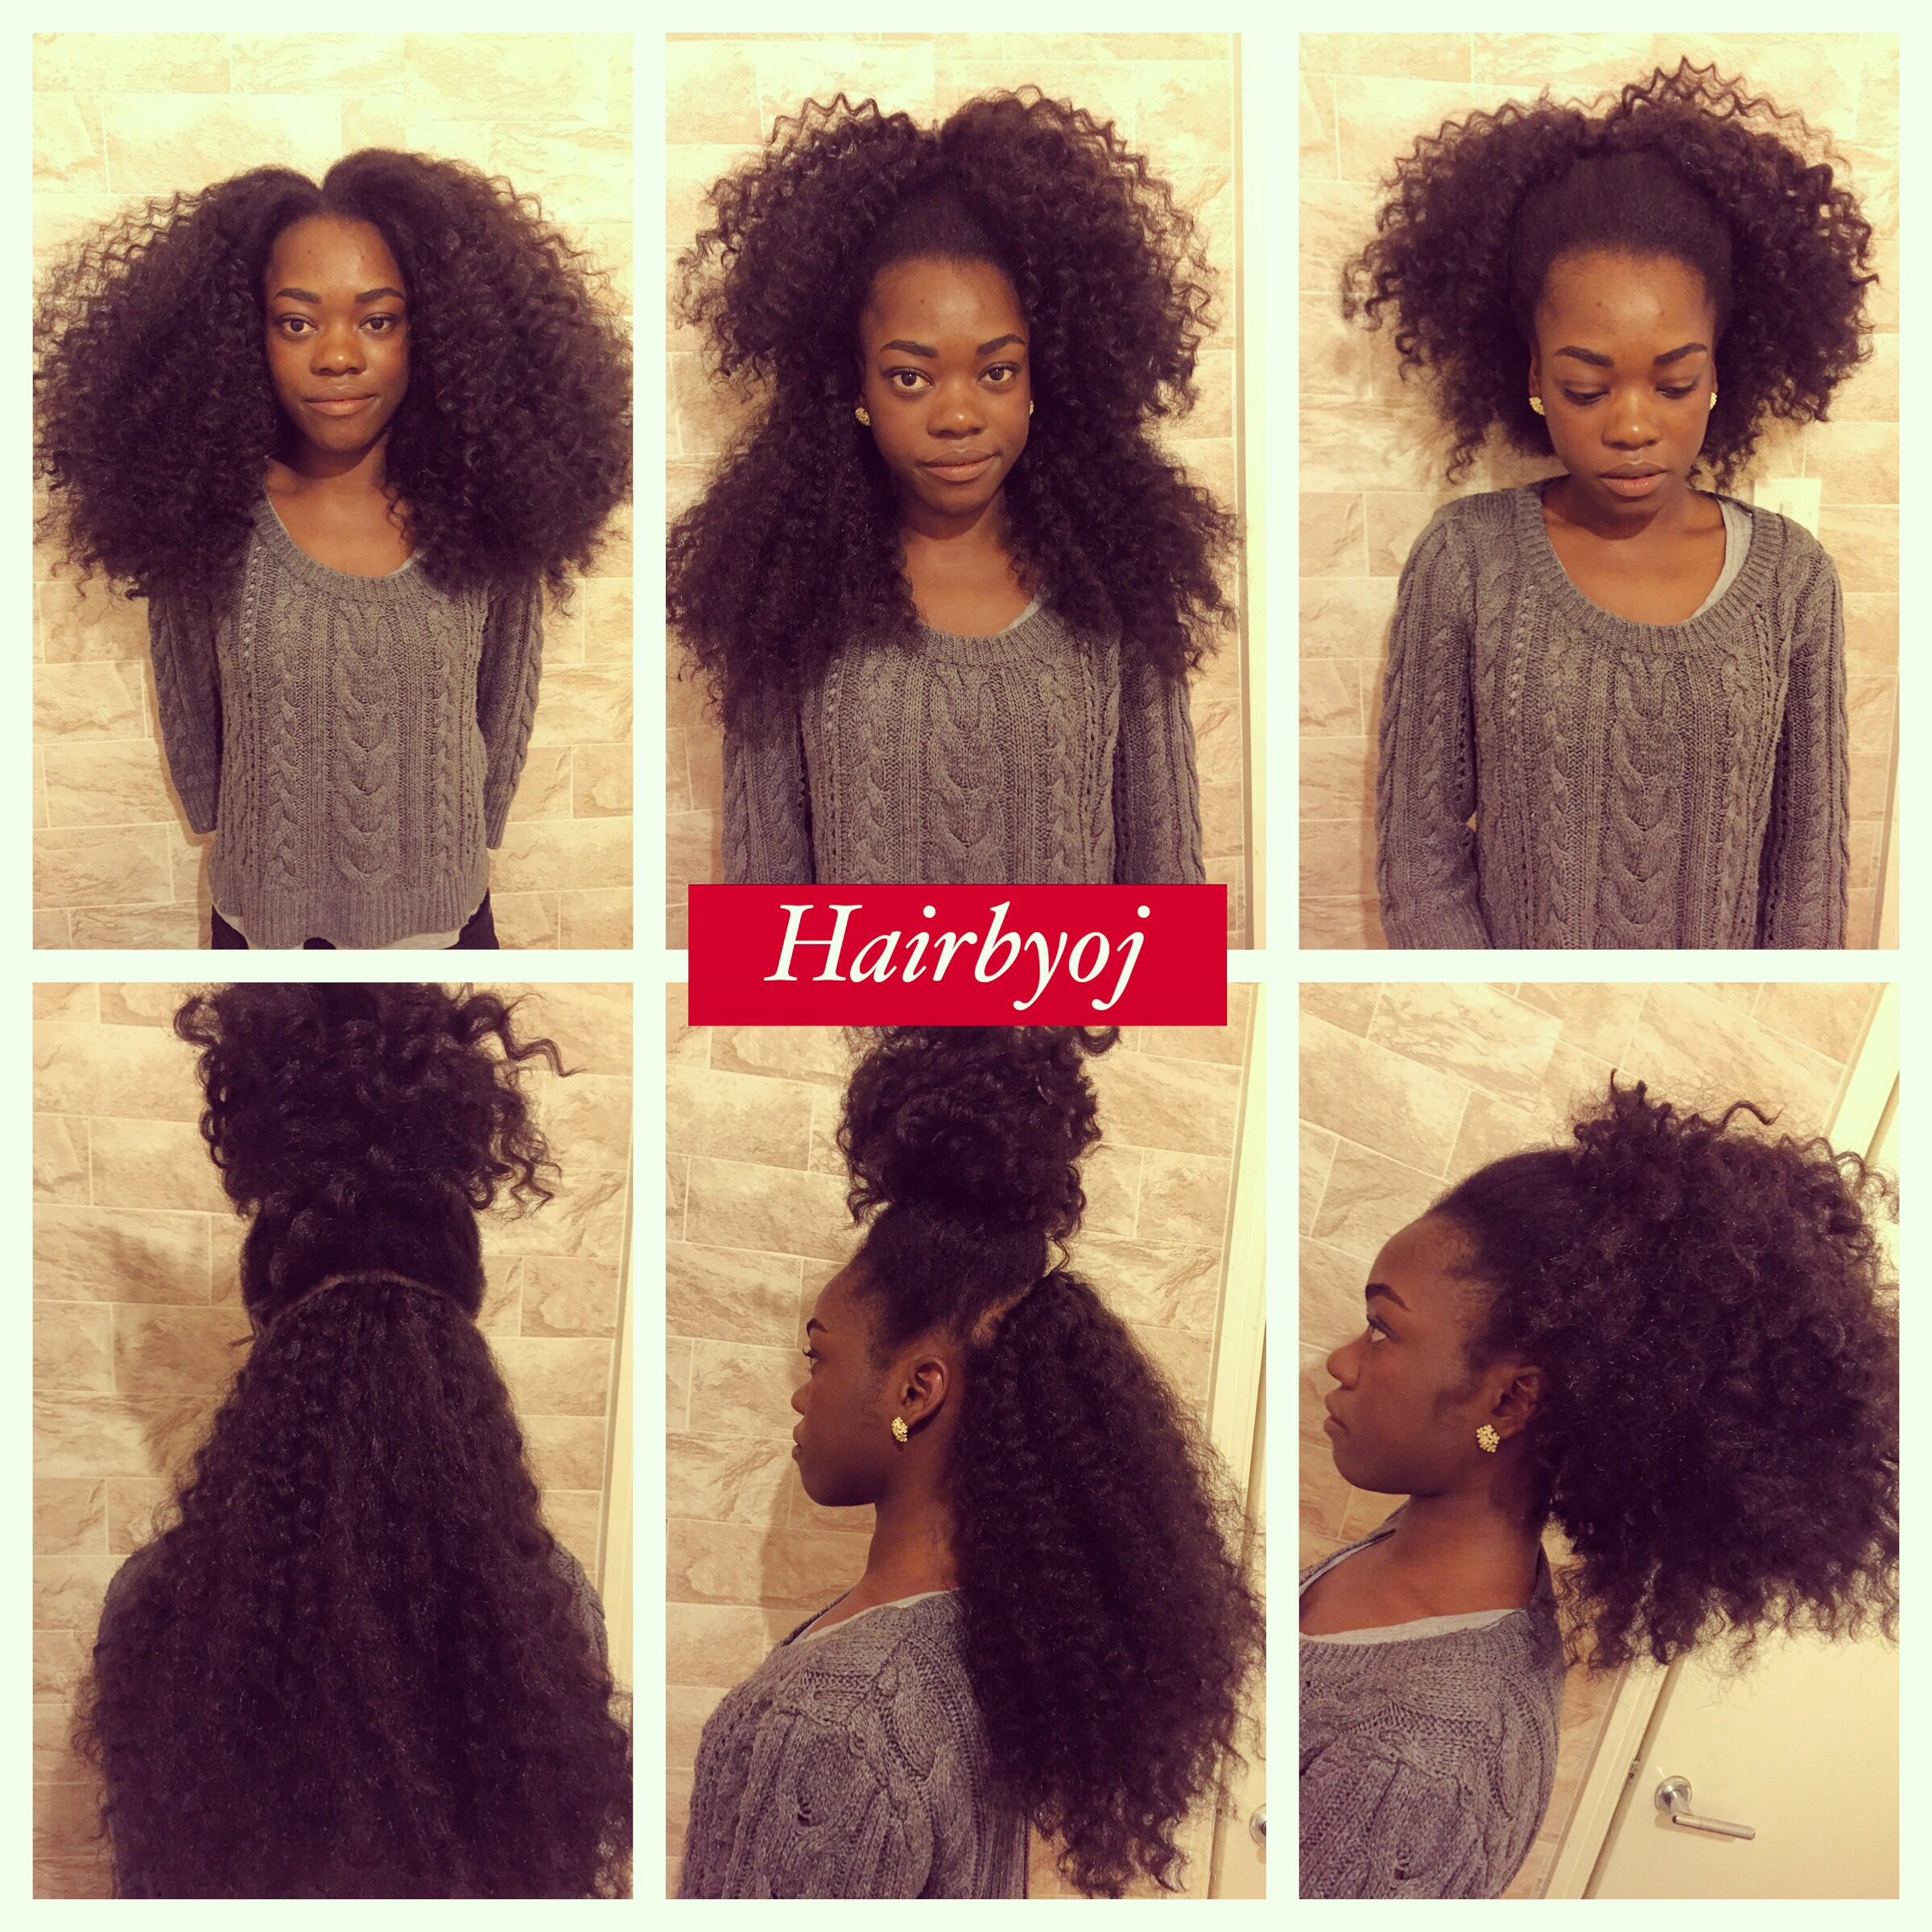 Crochet Hair Leave Out : ... knotless vixen crochet braids with perimeter leave out ? hairbyoj